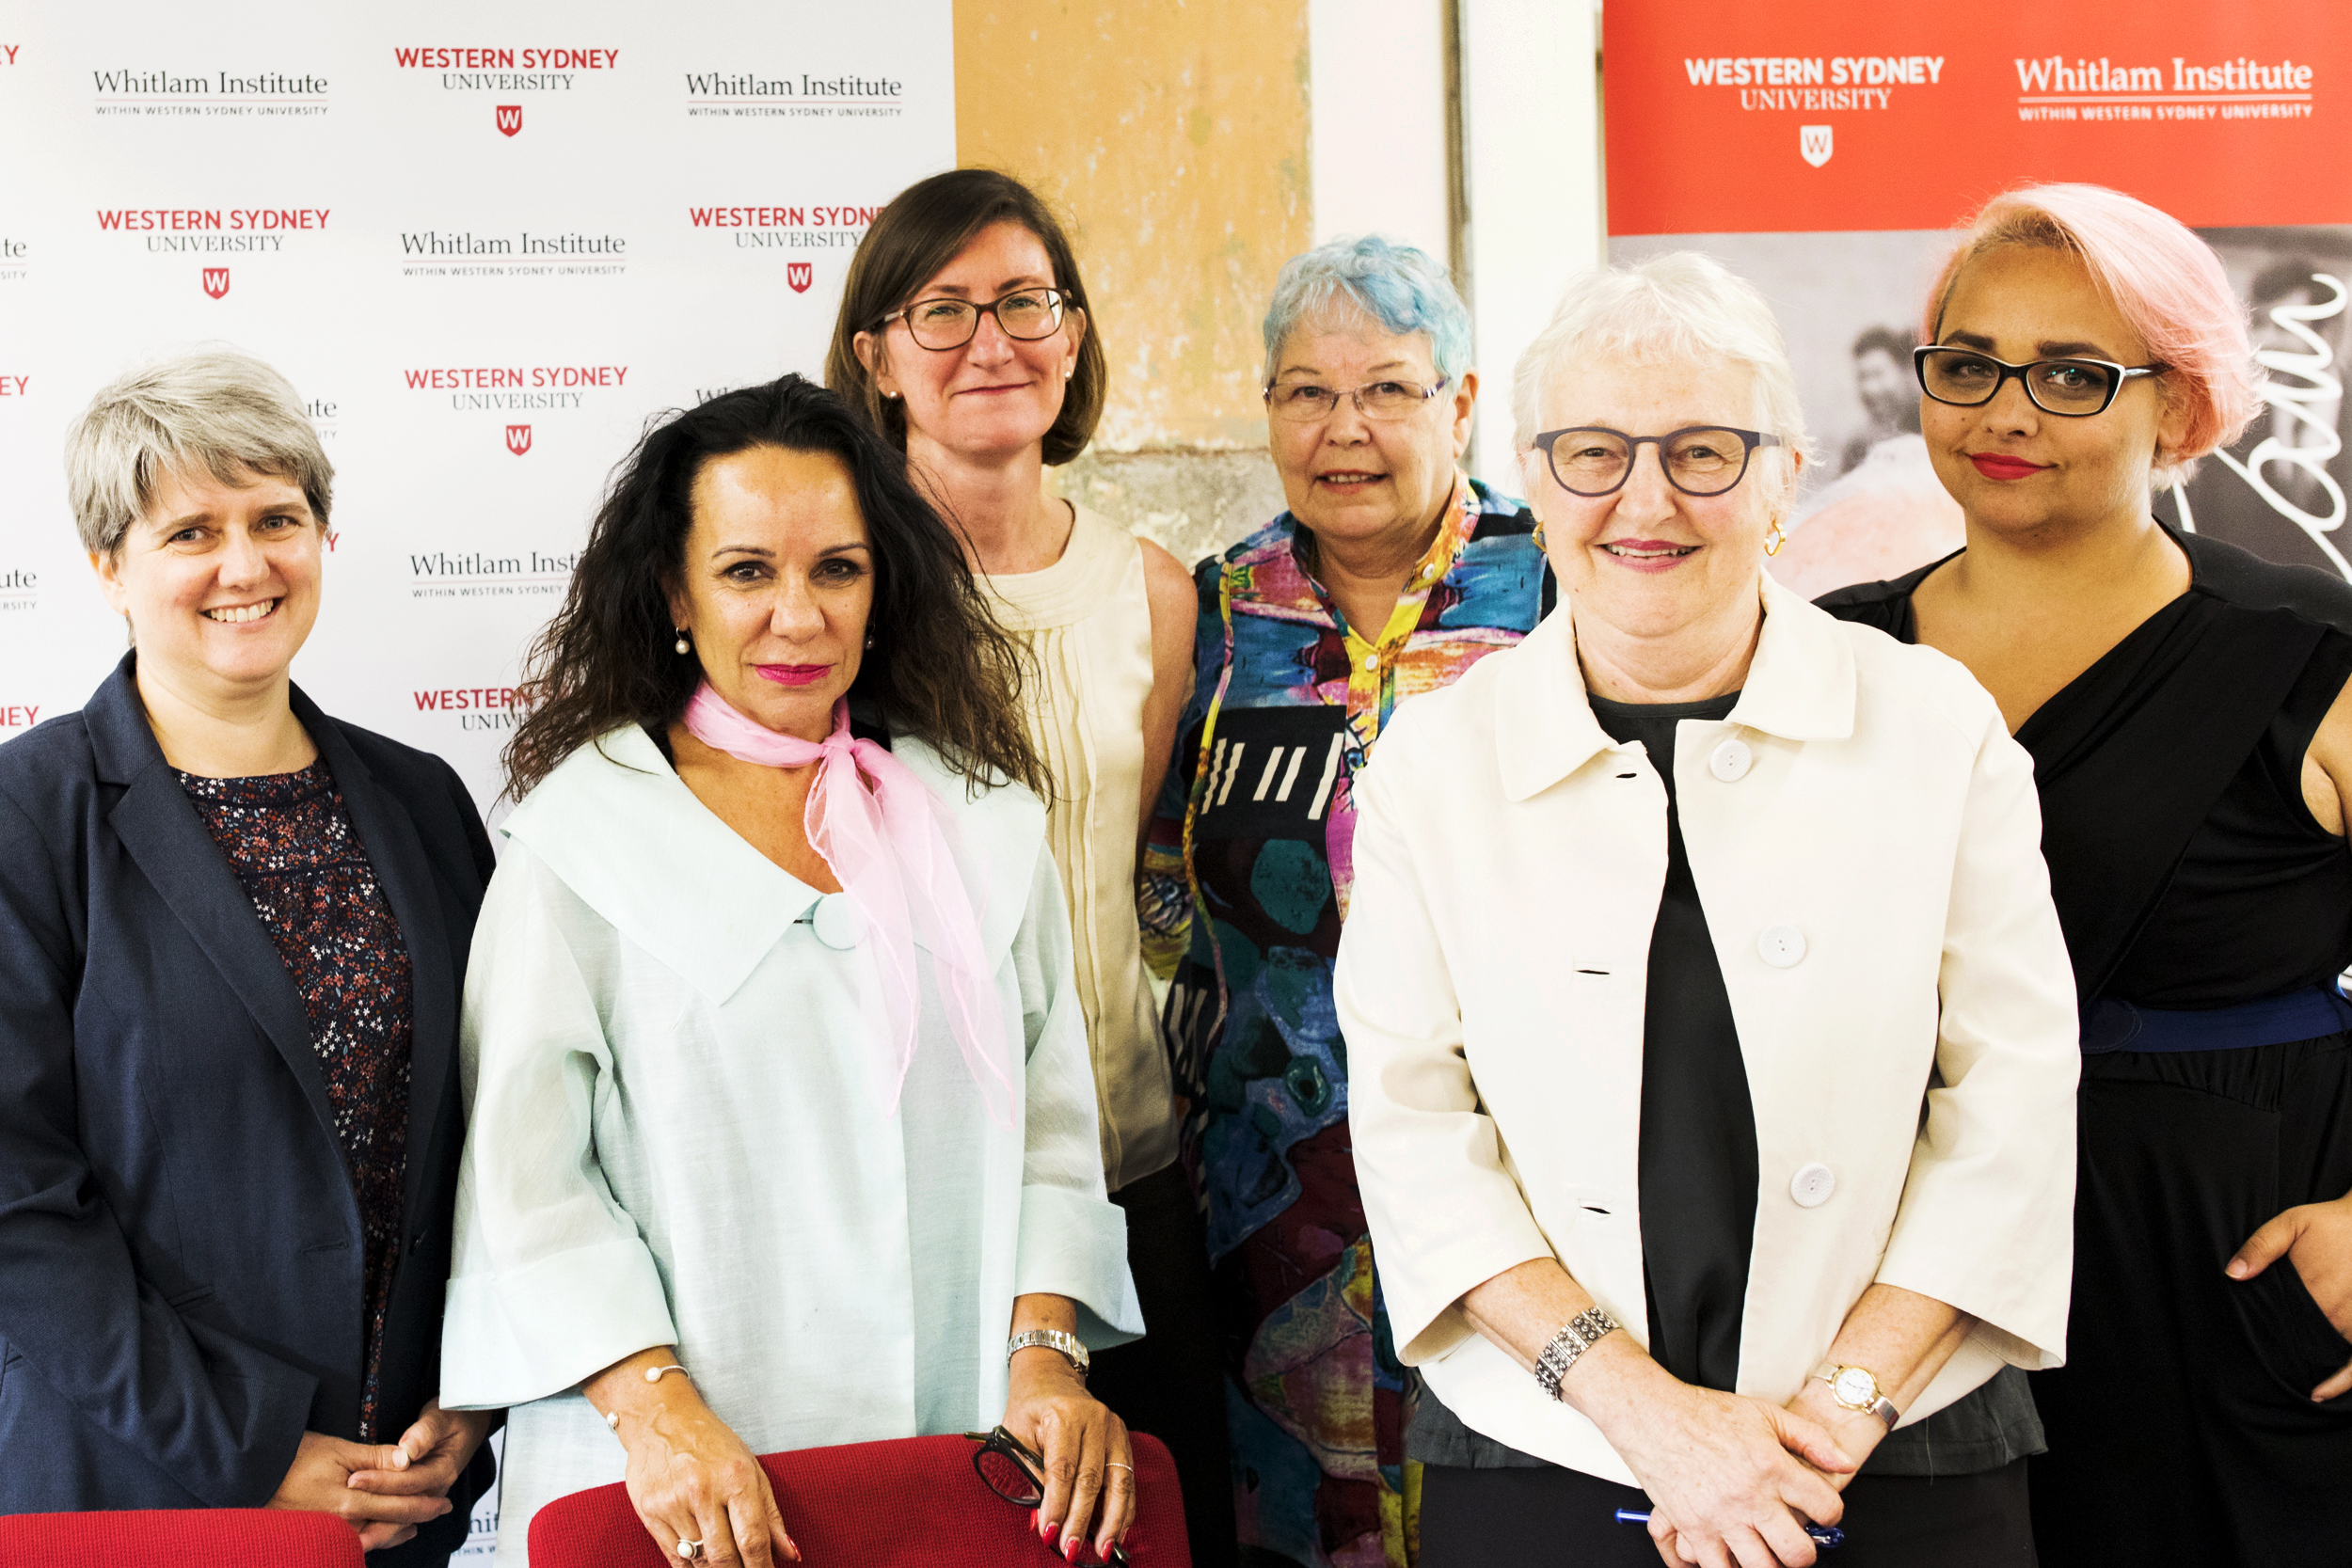 L to R: Diana Perche (Academic Coordinator, Indigenous Programs Unit, Nura Gili, UNSW), Hon Linda Burney MP (Member for Barton), Leanne Smith (Director, the Whitlam Institute), Lynda Holden (Lecturer in Aboriginal & Torres Strait Islander Law, School of Law, Western Sydney University), Anna Yeatman (Professor, Institute for Culture and Society, Western Sydney University), Gemma McKinnon (Associate Lecturer, Law, UNSW)